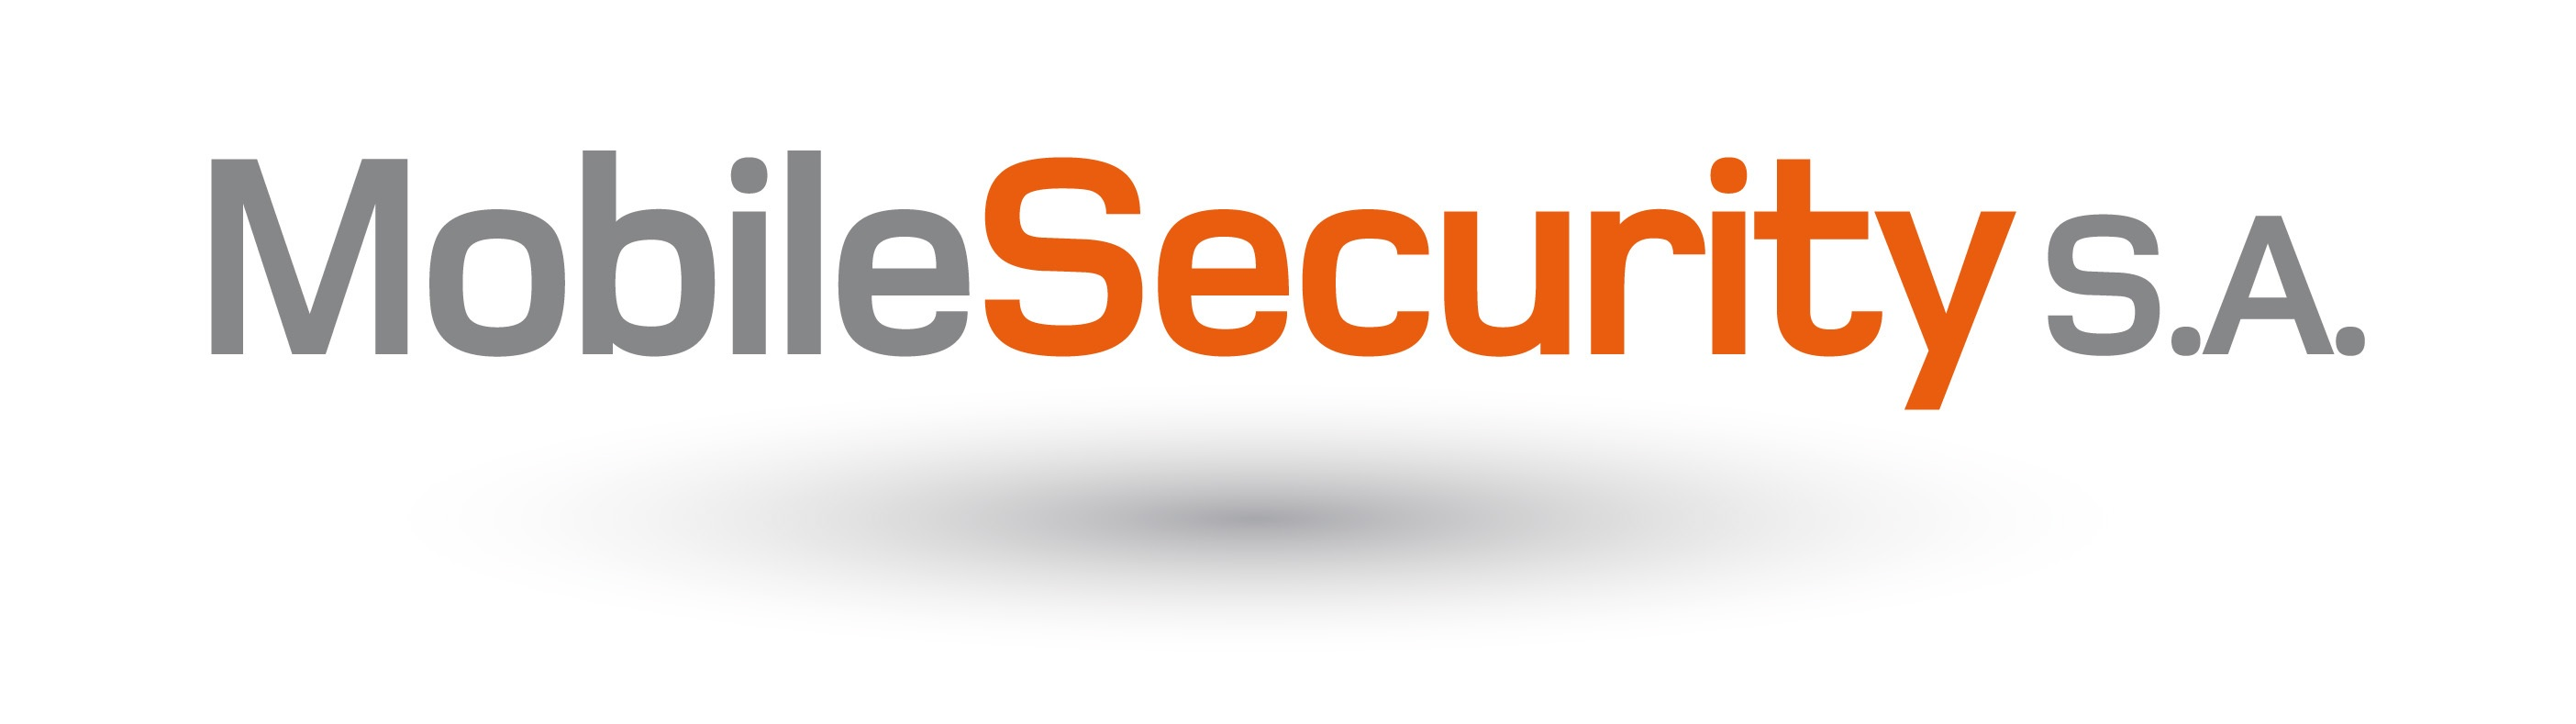 Mobile Security, S.A. Logo